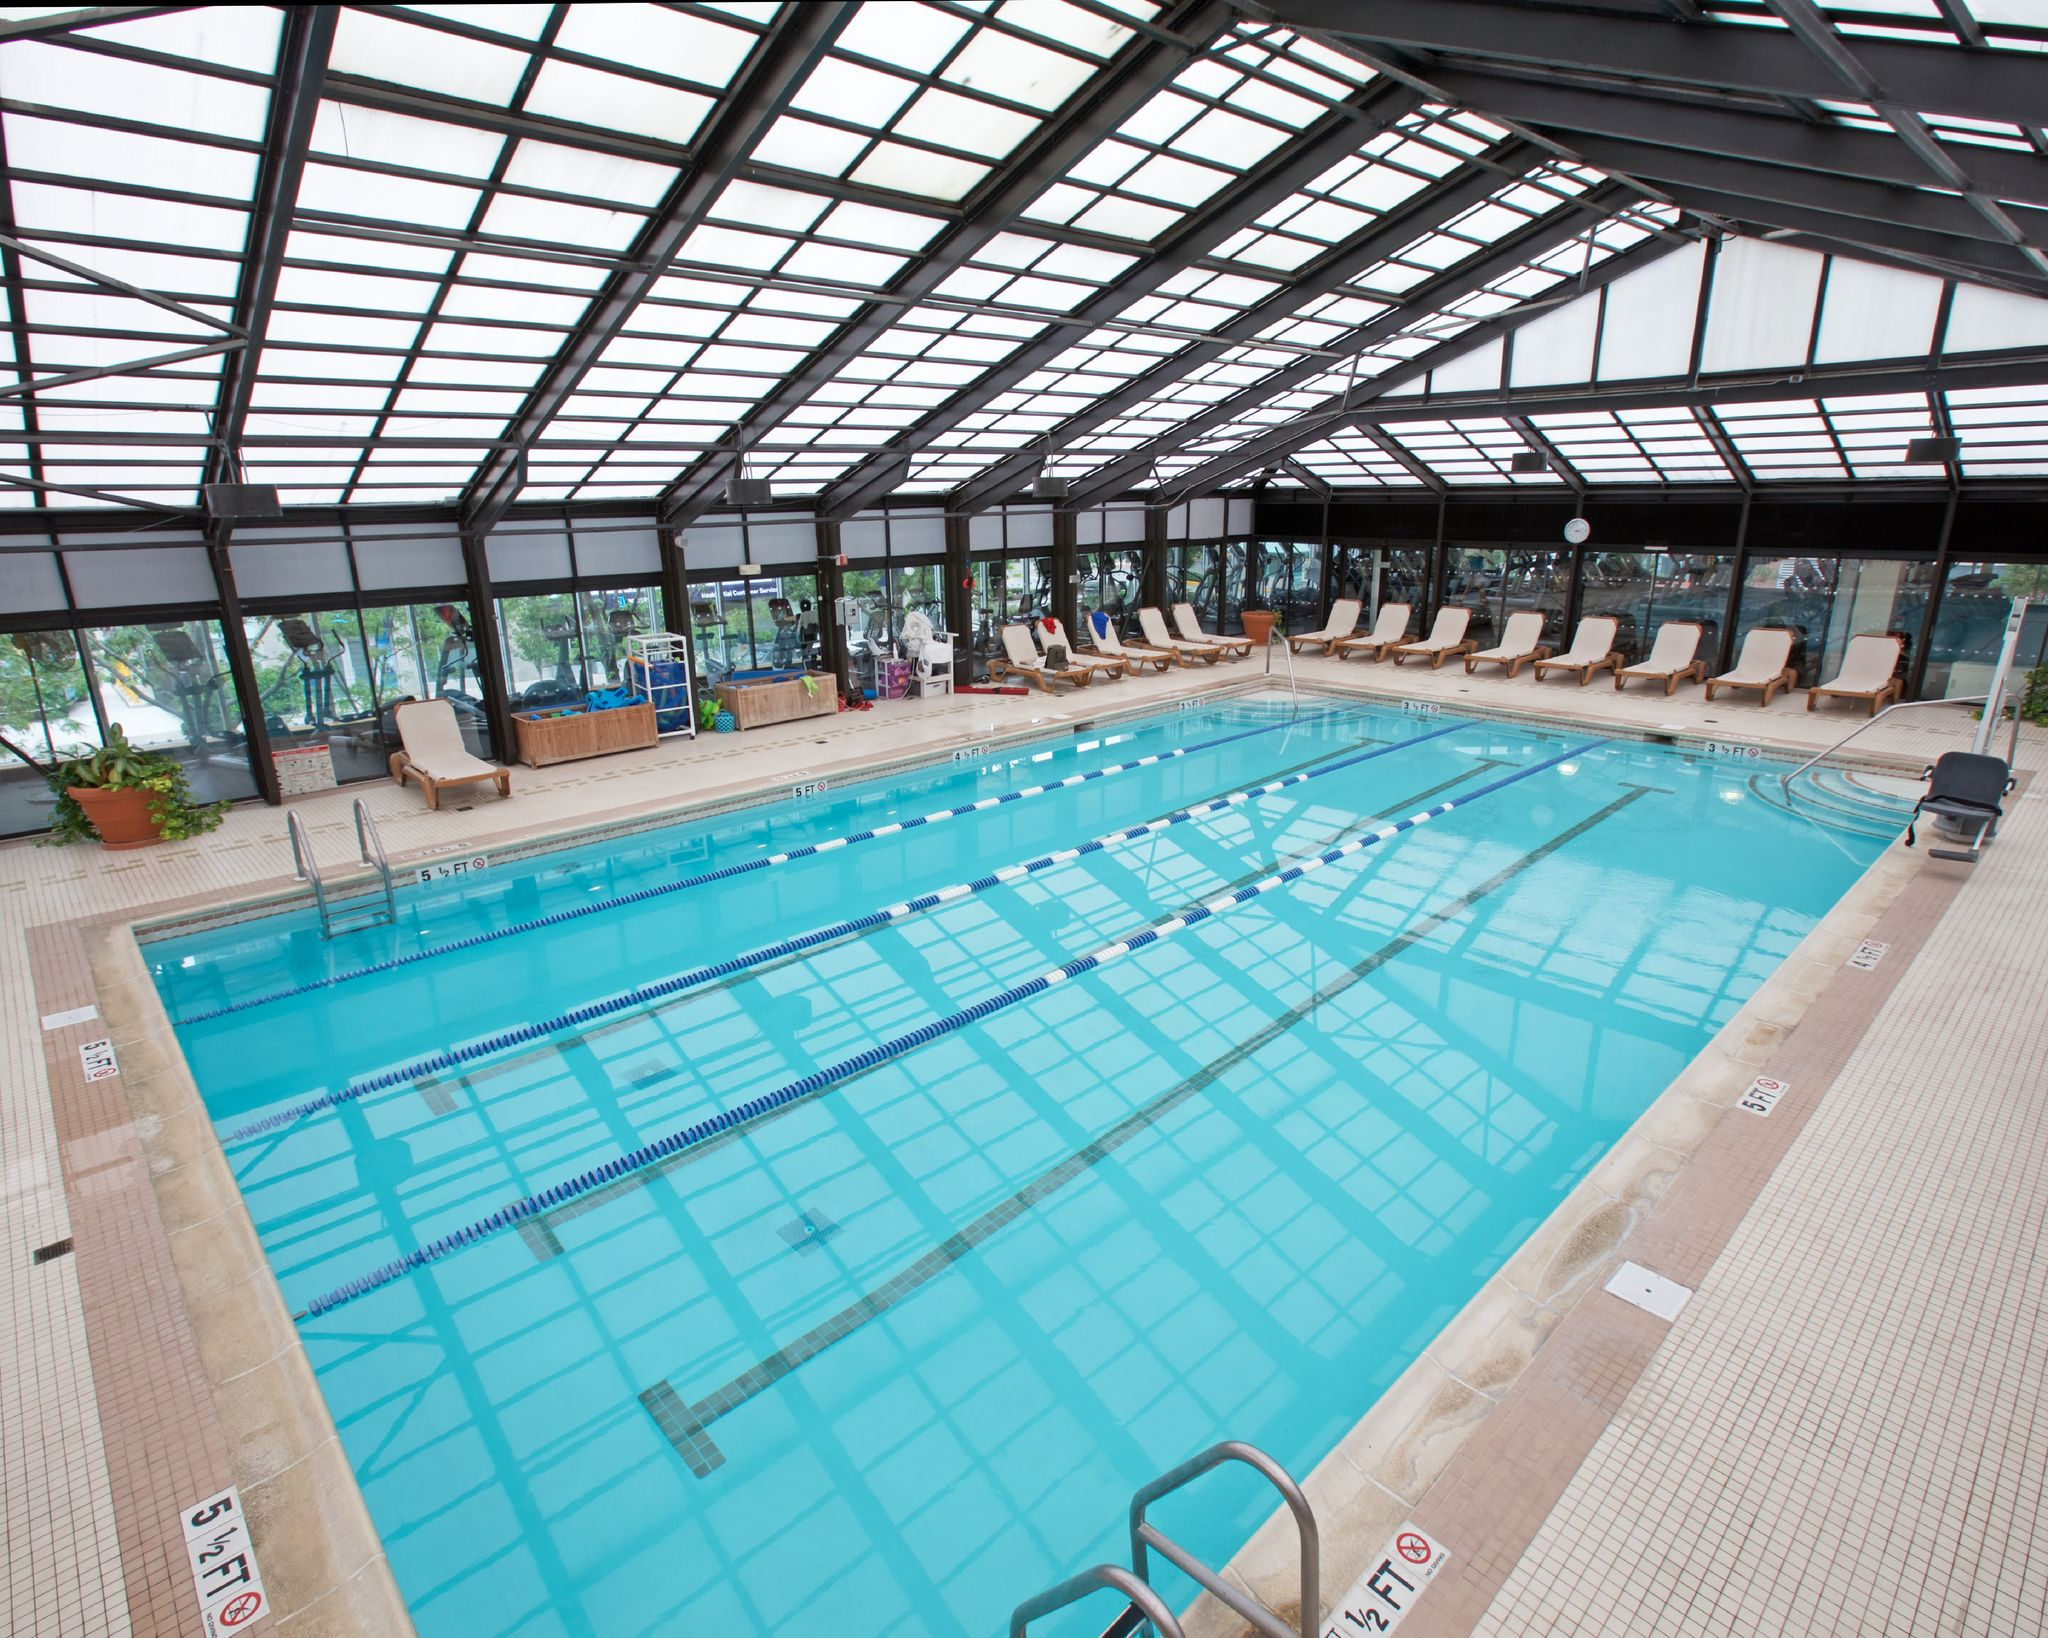 five-lane swimming pool at Newport Swim & Fitness